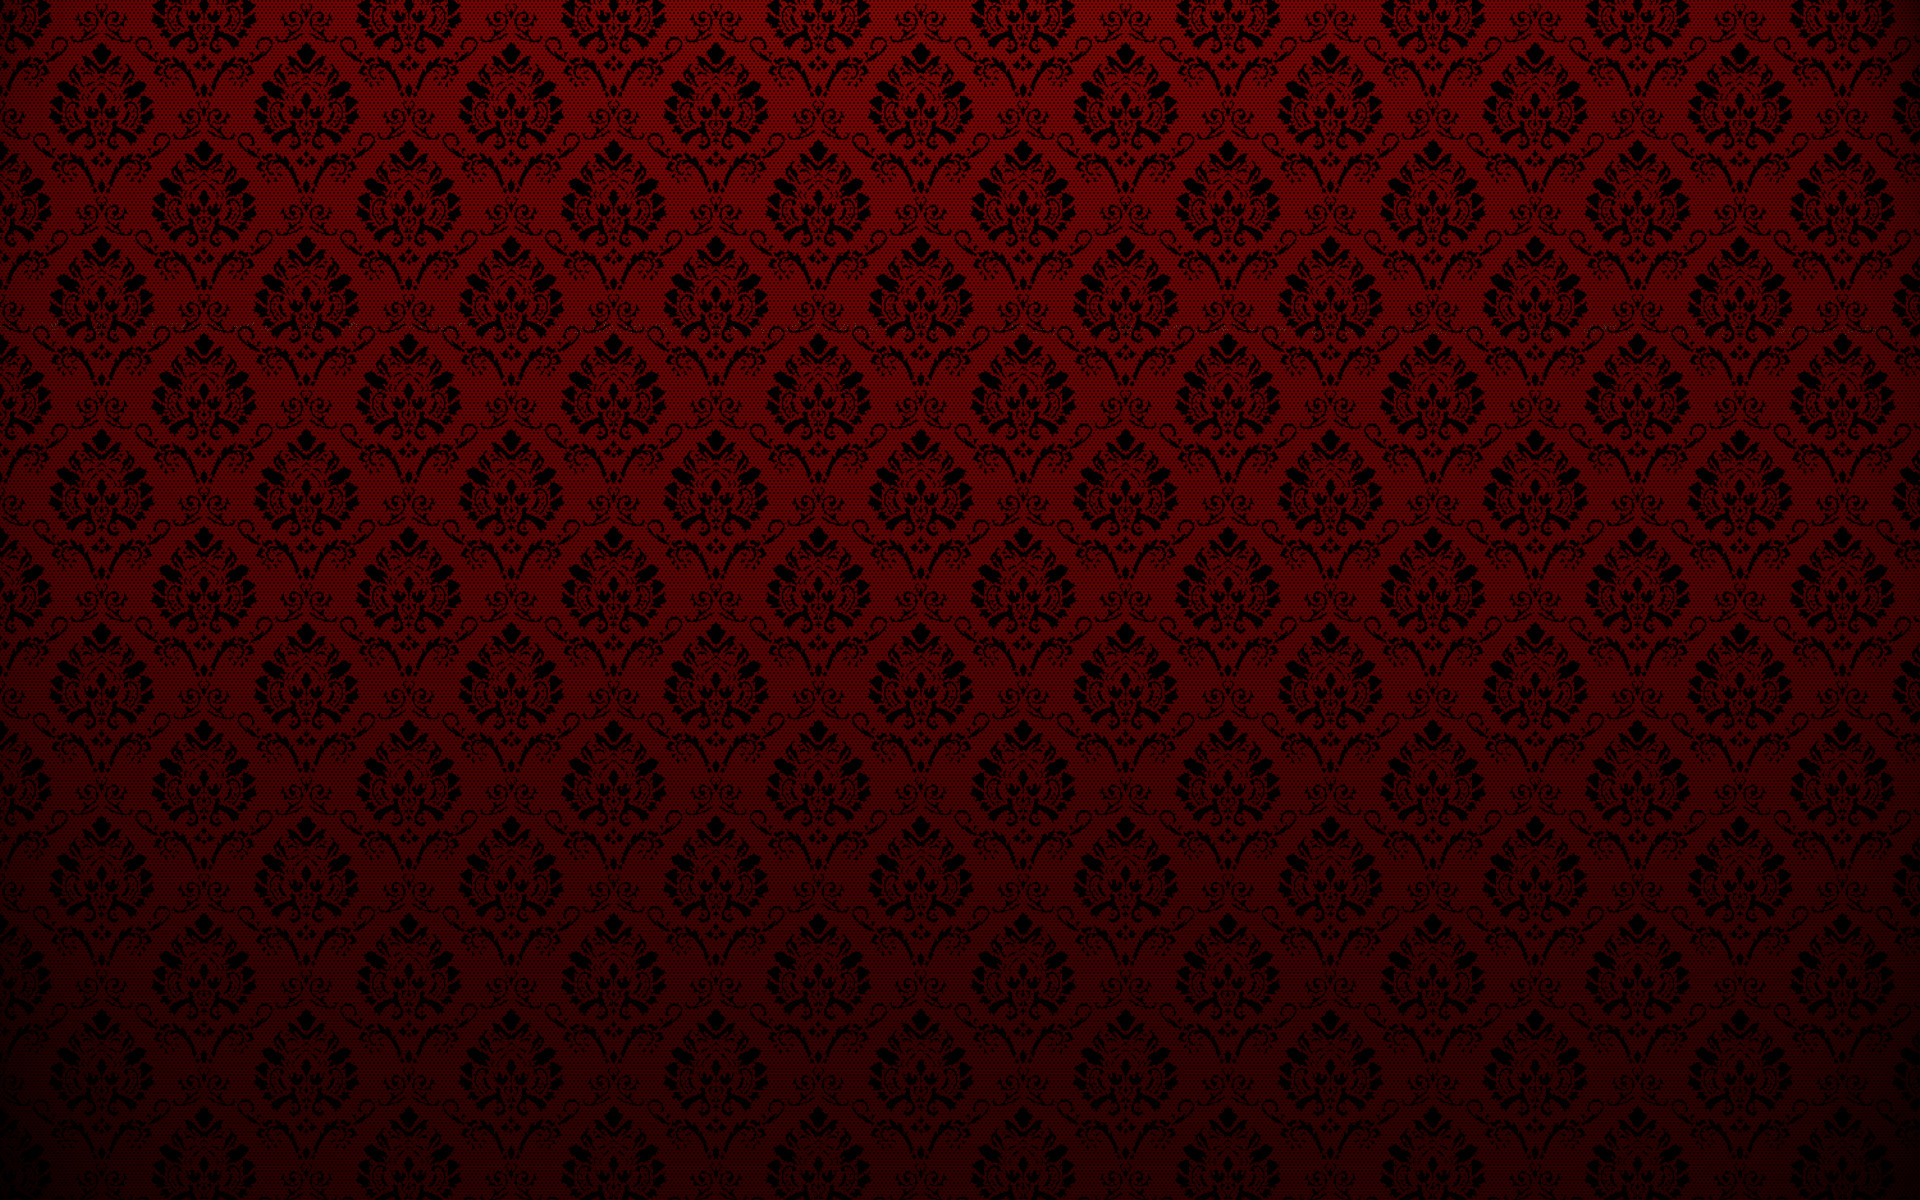 HQ Definition Texture Wallpapers | Background ID:27435919